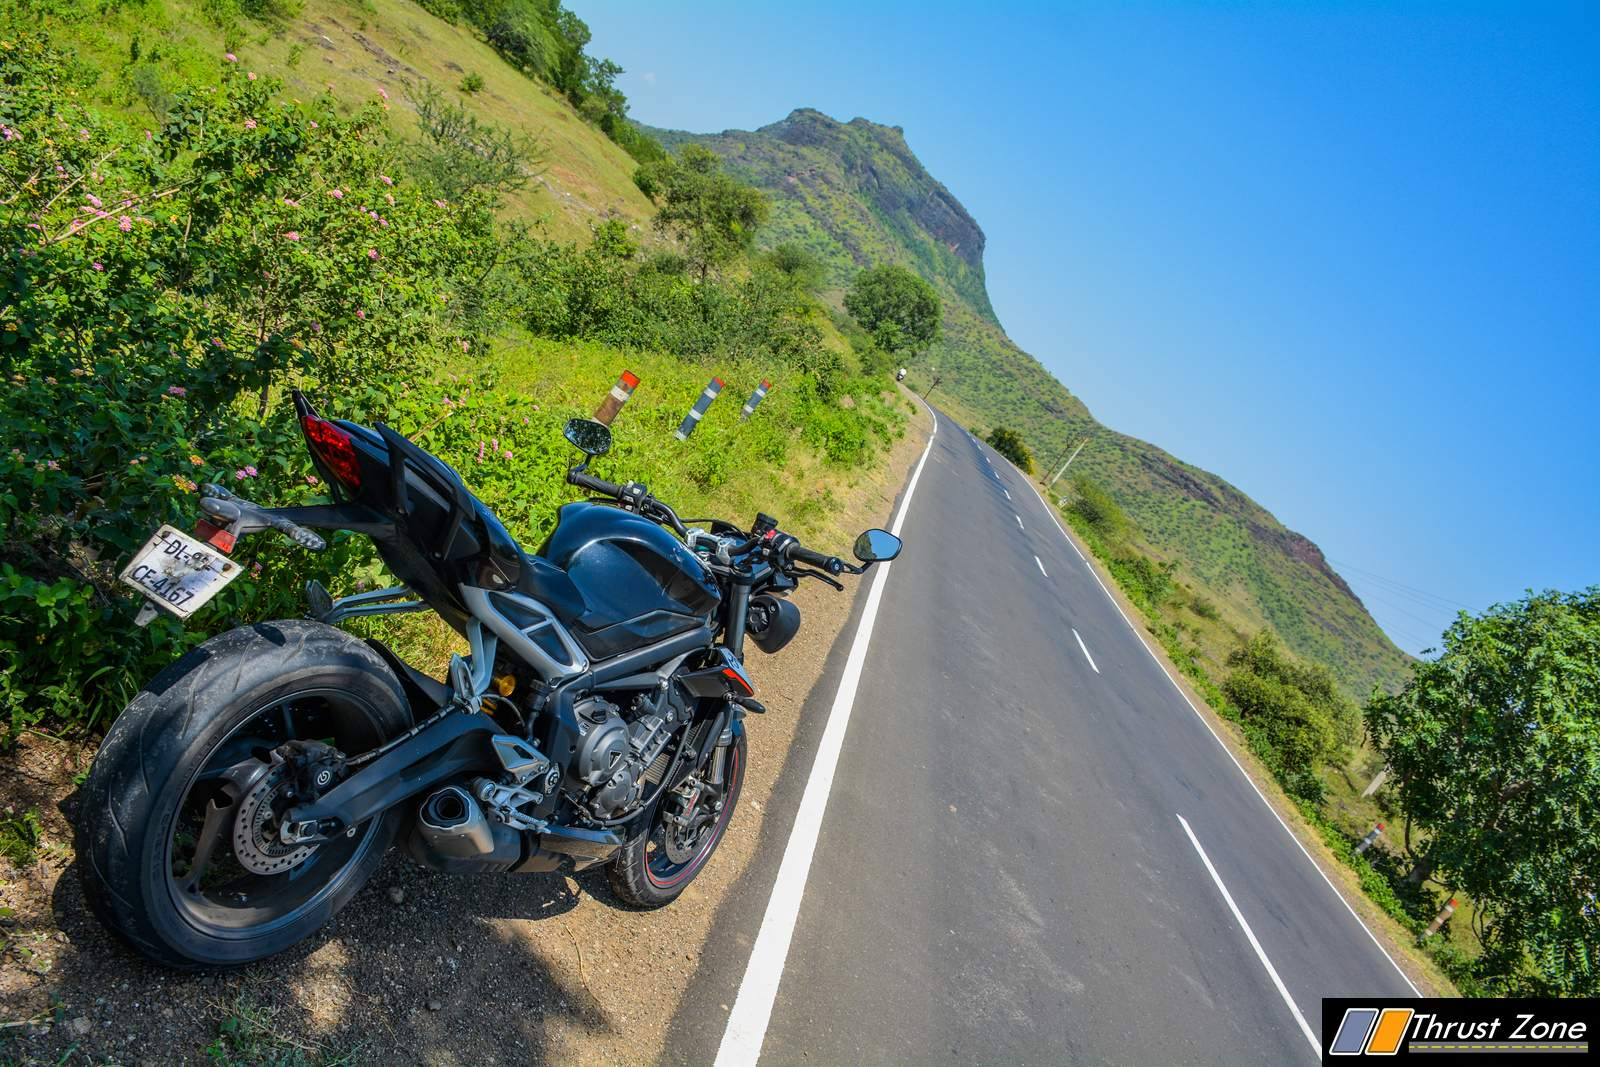 https://www.thrustzone.com/wp-content/uploads/2018/10/2018-Street-Triple-RS-India-Review-14.jpg